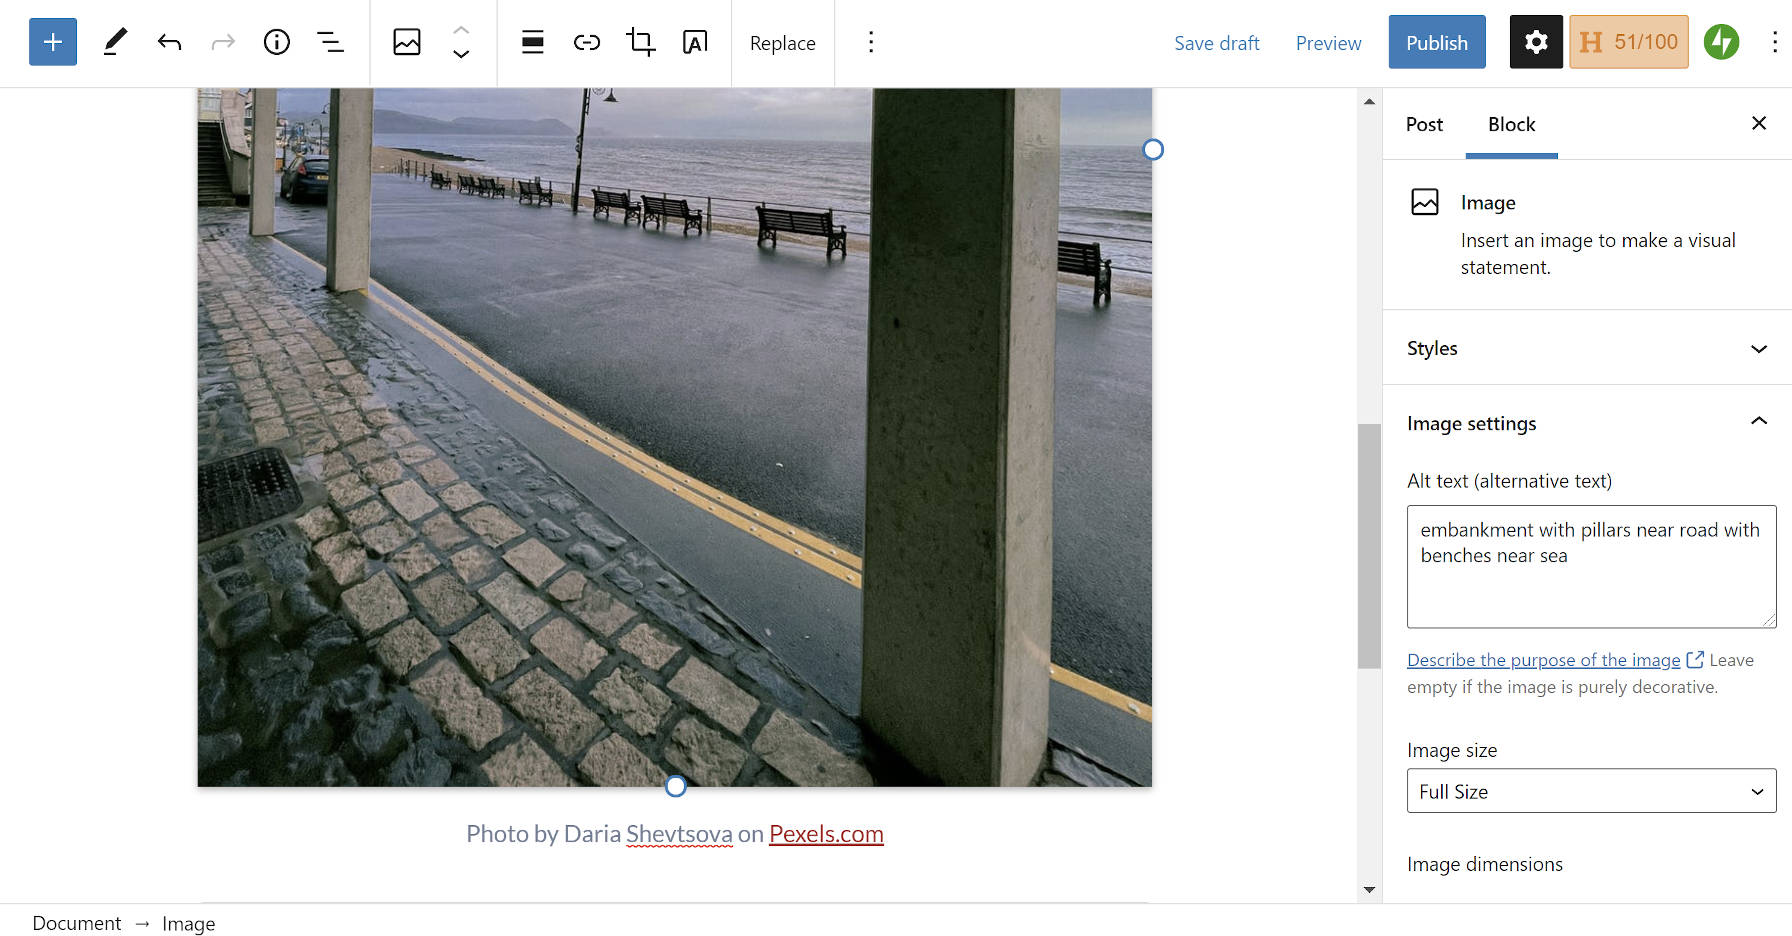 Screenshot of inserting an image via Jetpack's Pexels integration with pre-filled photo credits and alt text.